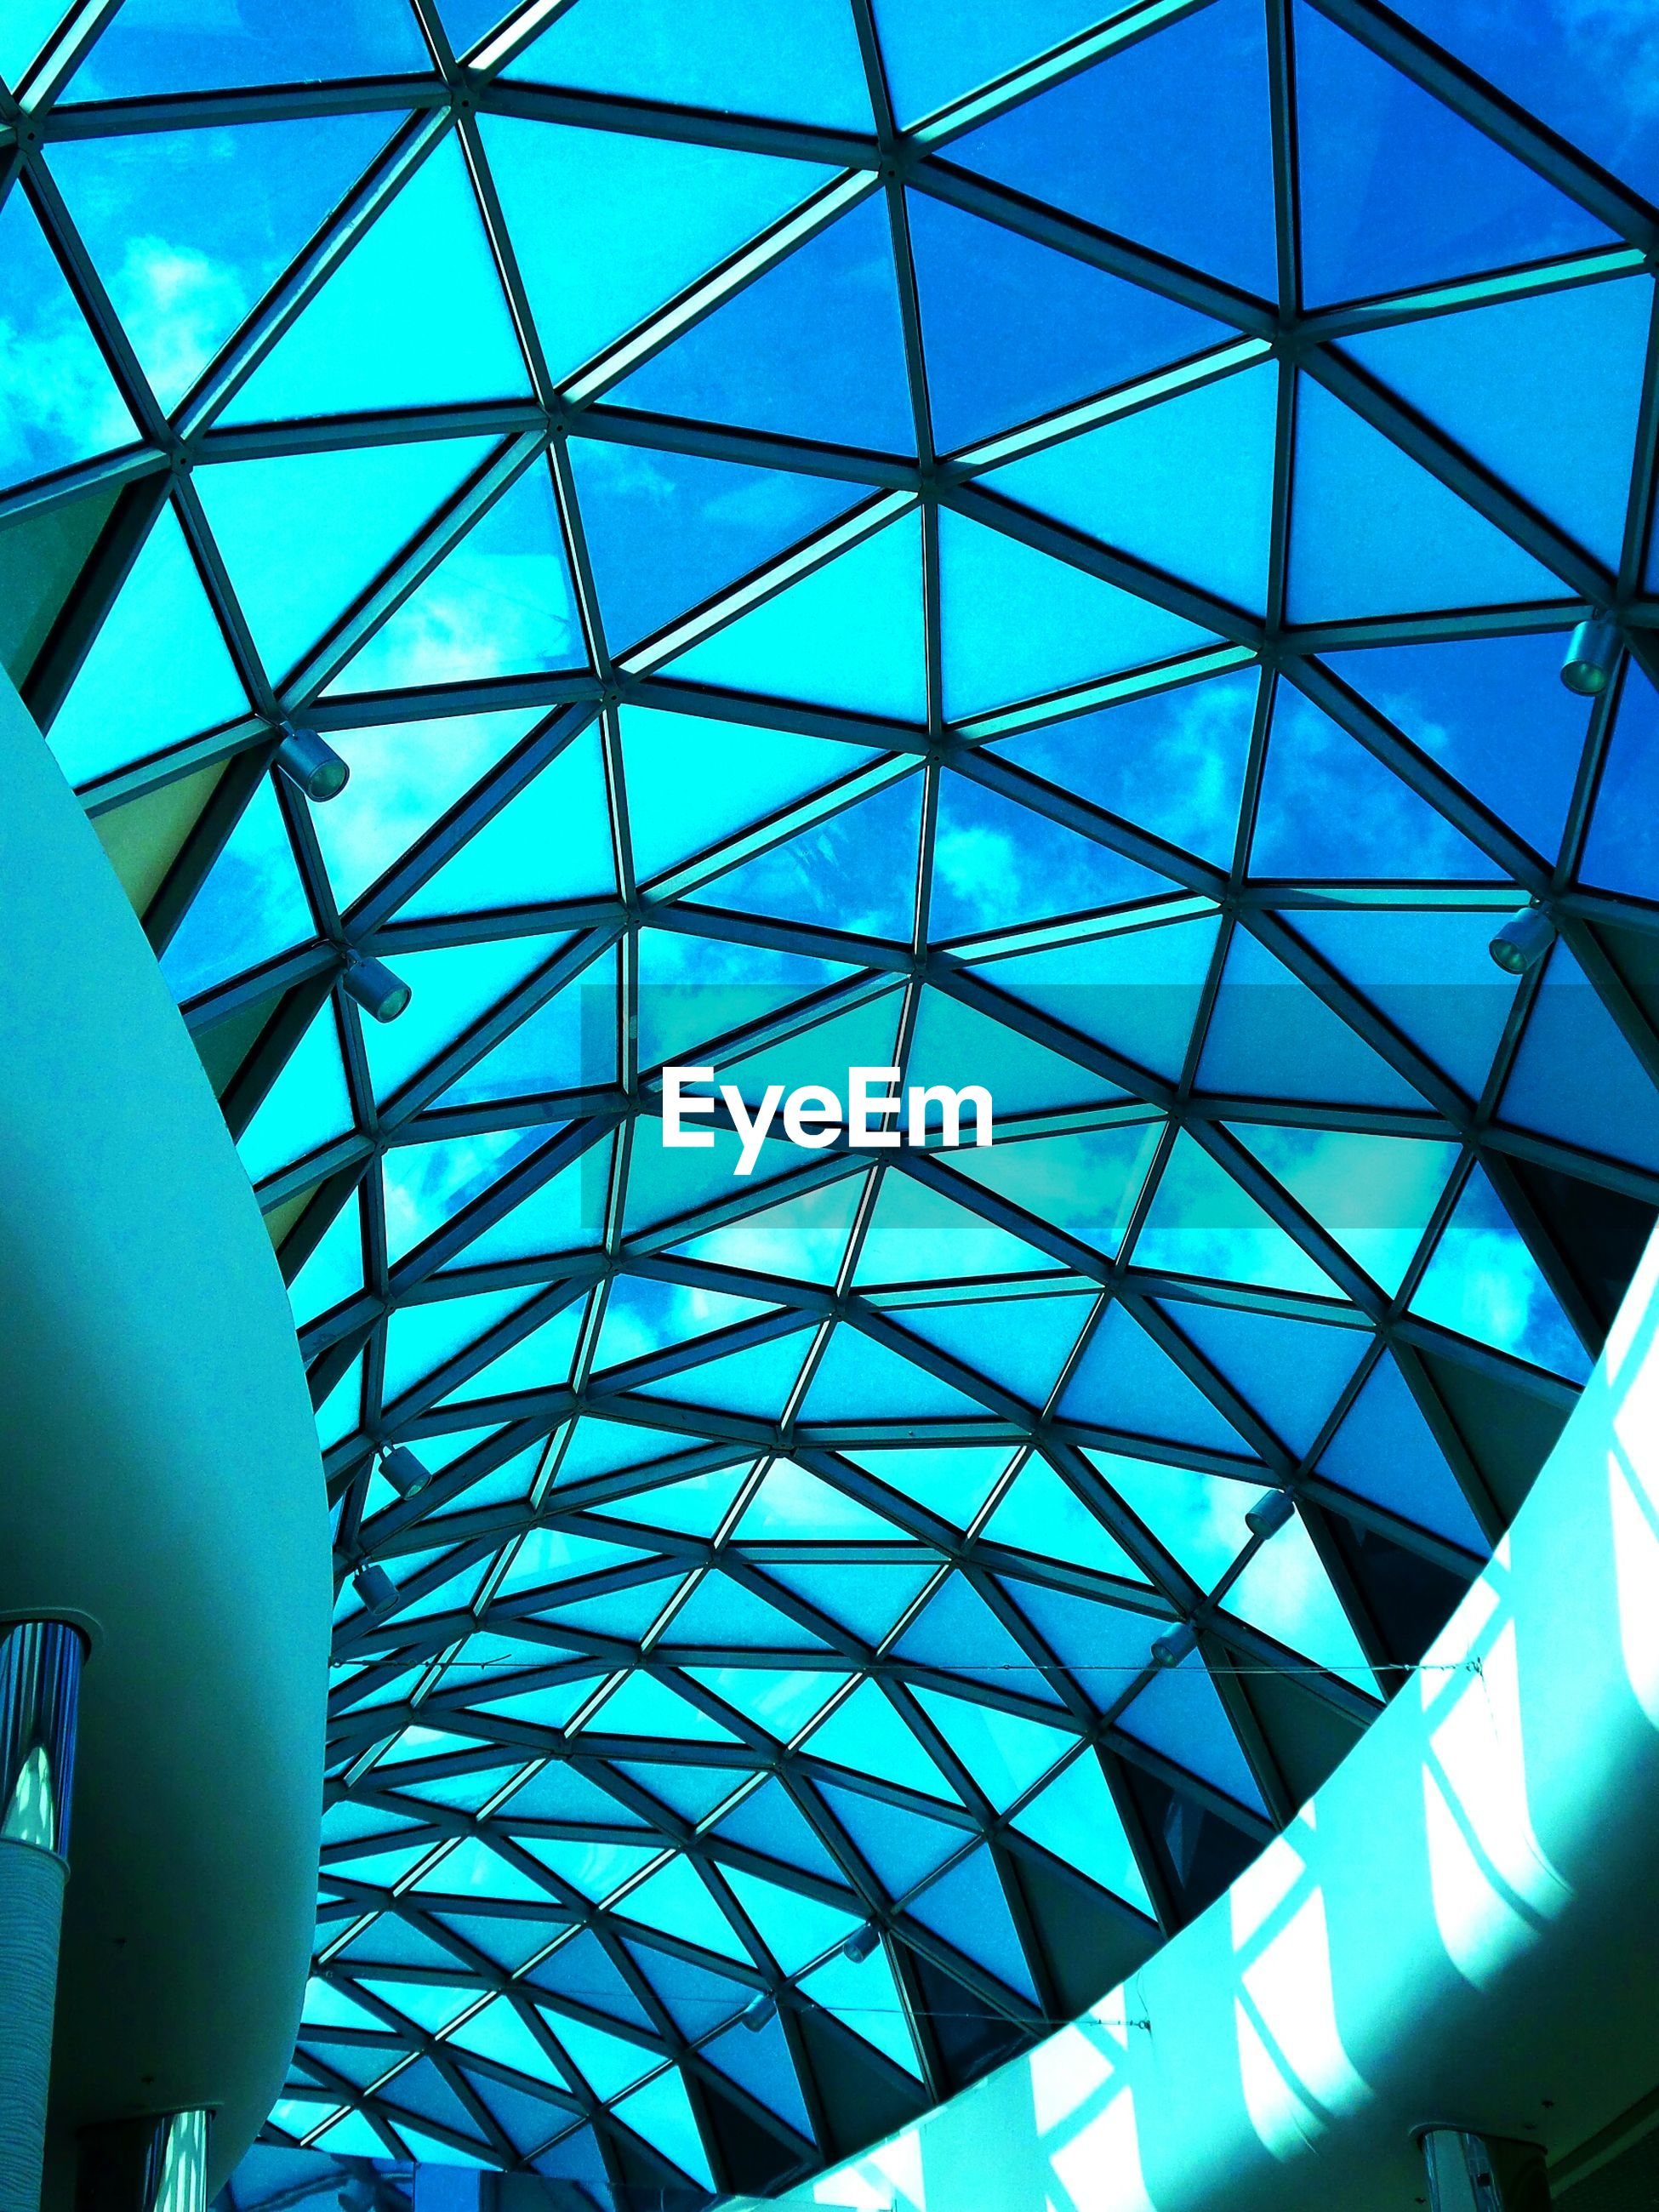 indoors, architecture, glass - material, built structure, low angle view, ceiling, modern, geometric shape, pattern, full frame, backgrounds, architectural feature, glass, transparent, skylight, blue, window, sky, reflection, no people